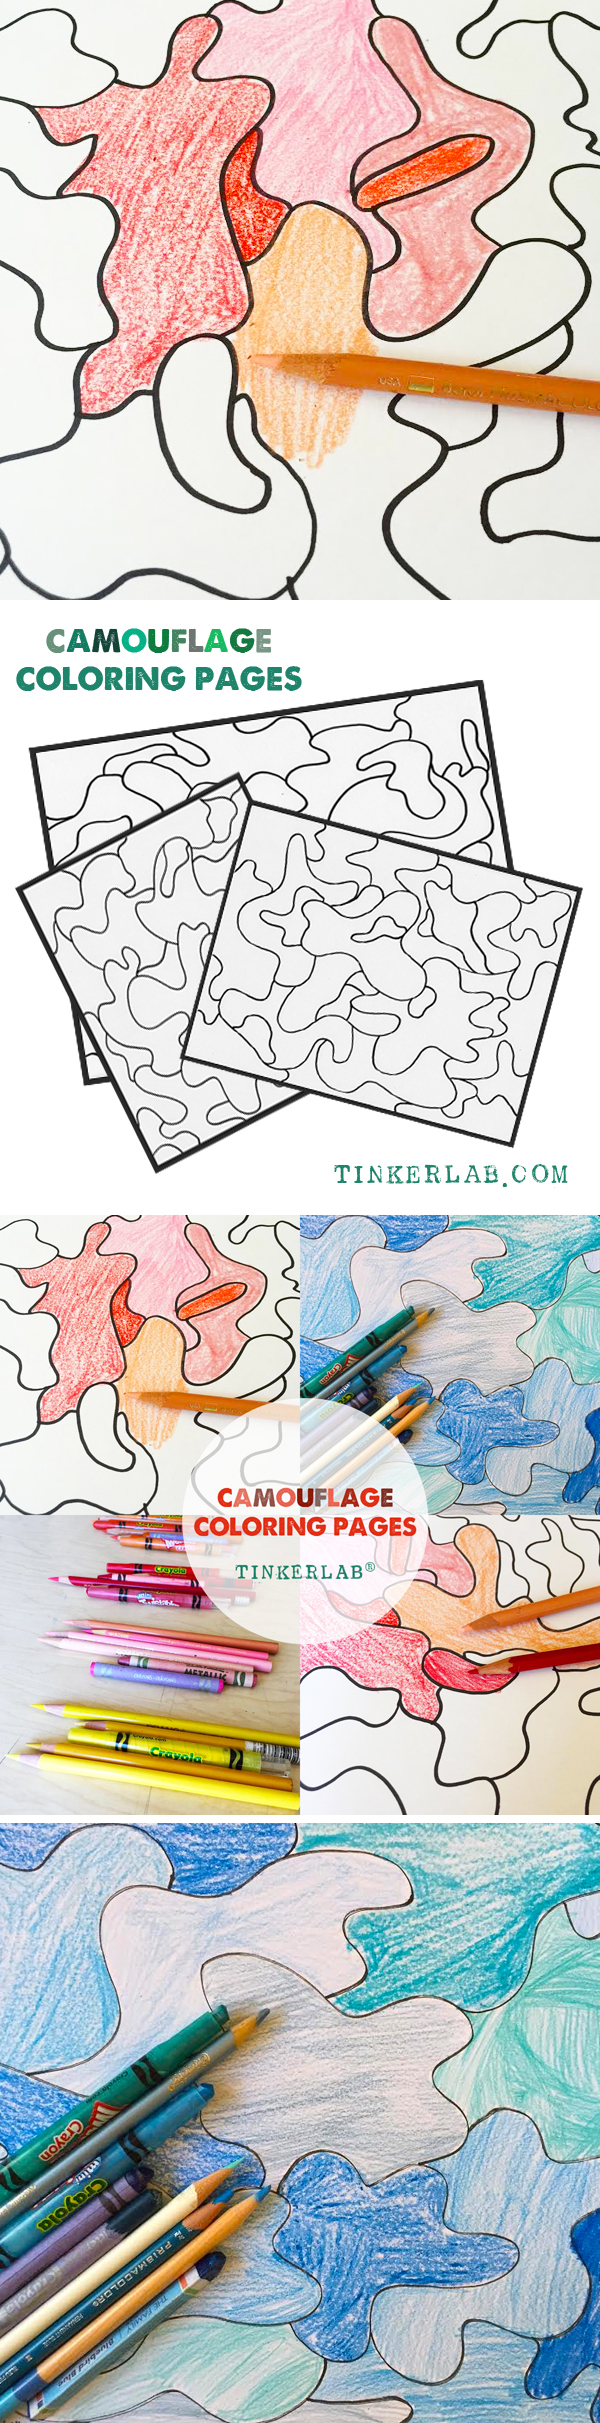 Camouflage Coloring Page Printable on TinkerLab